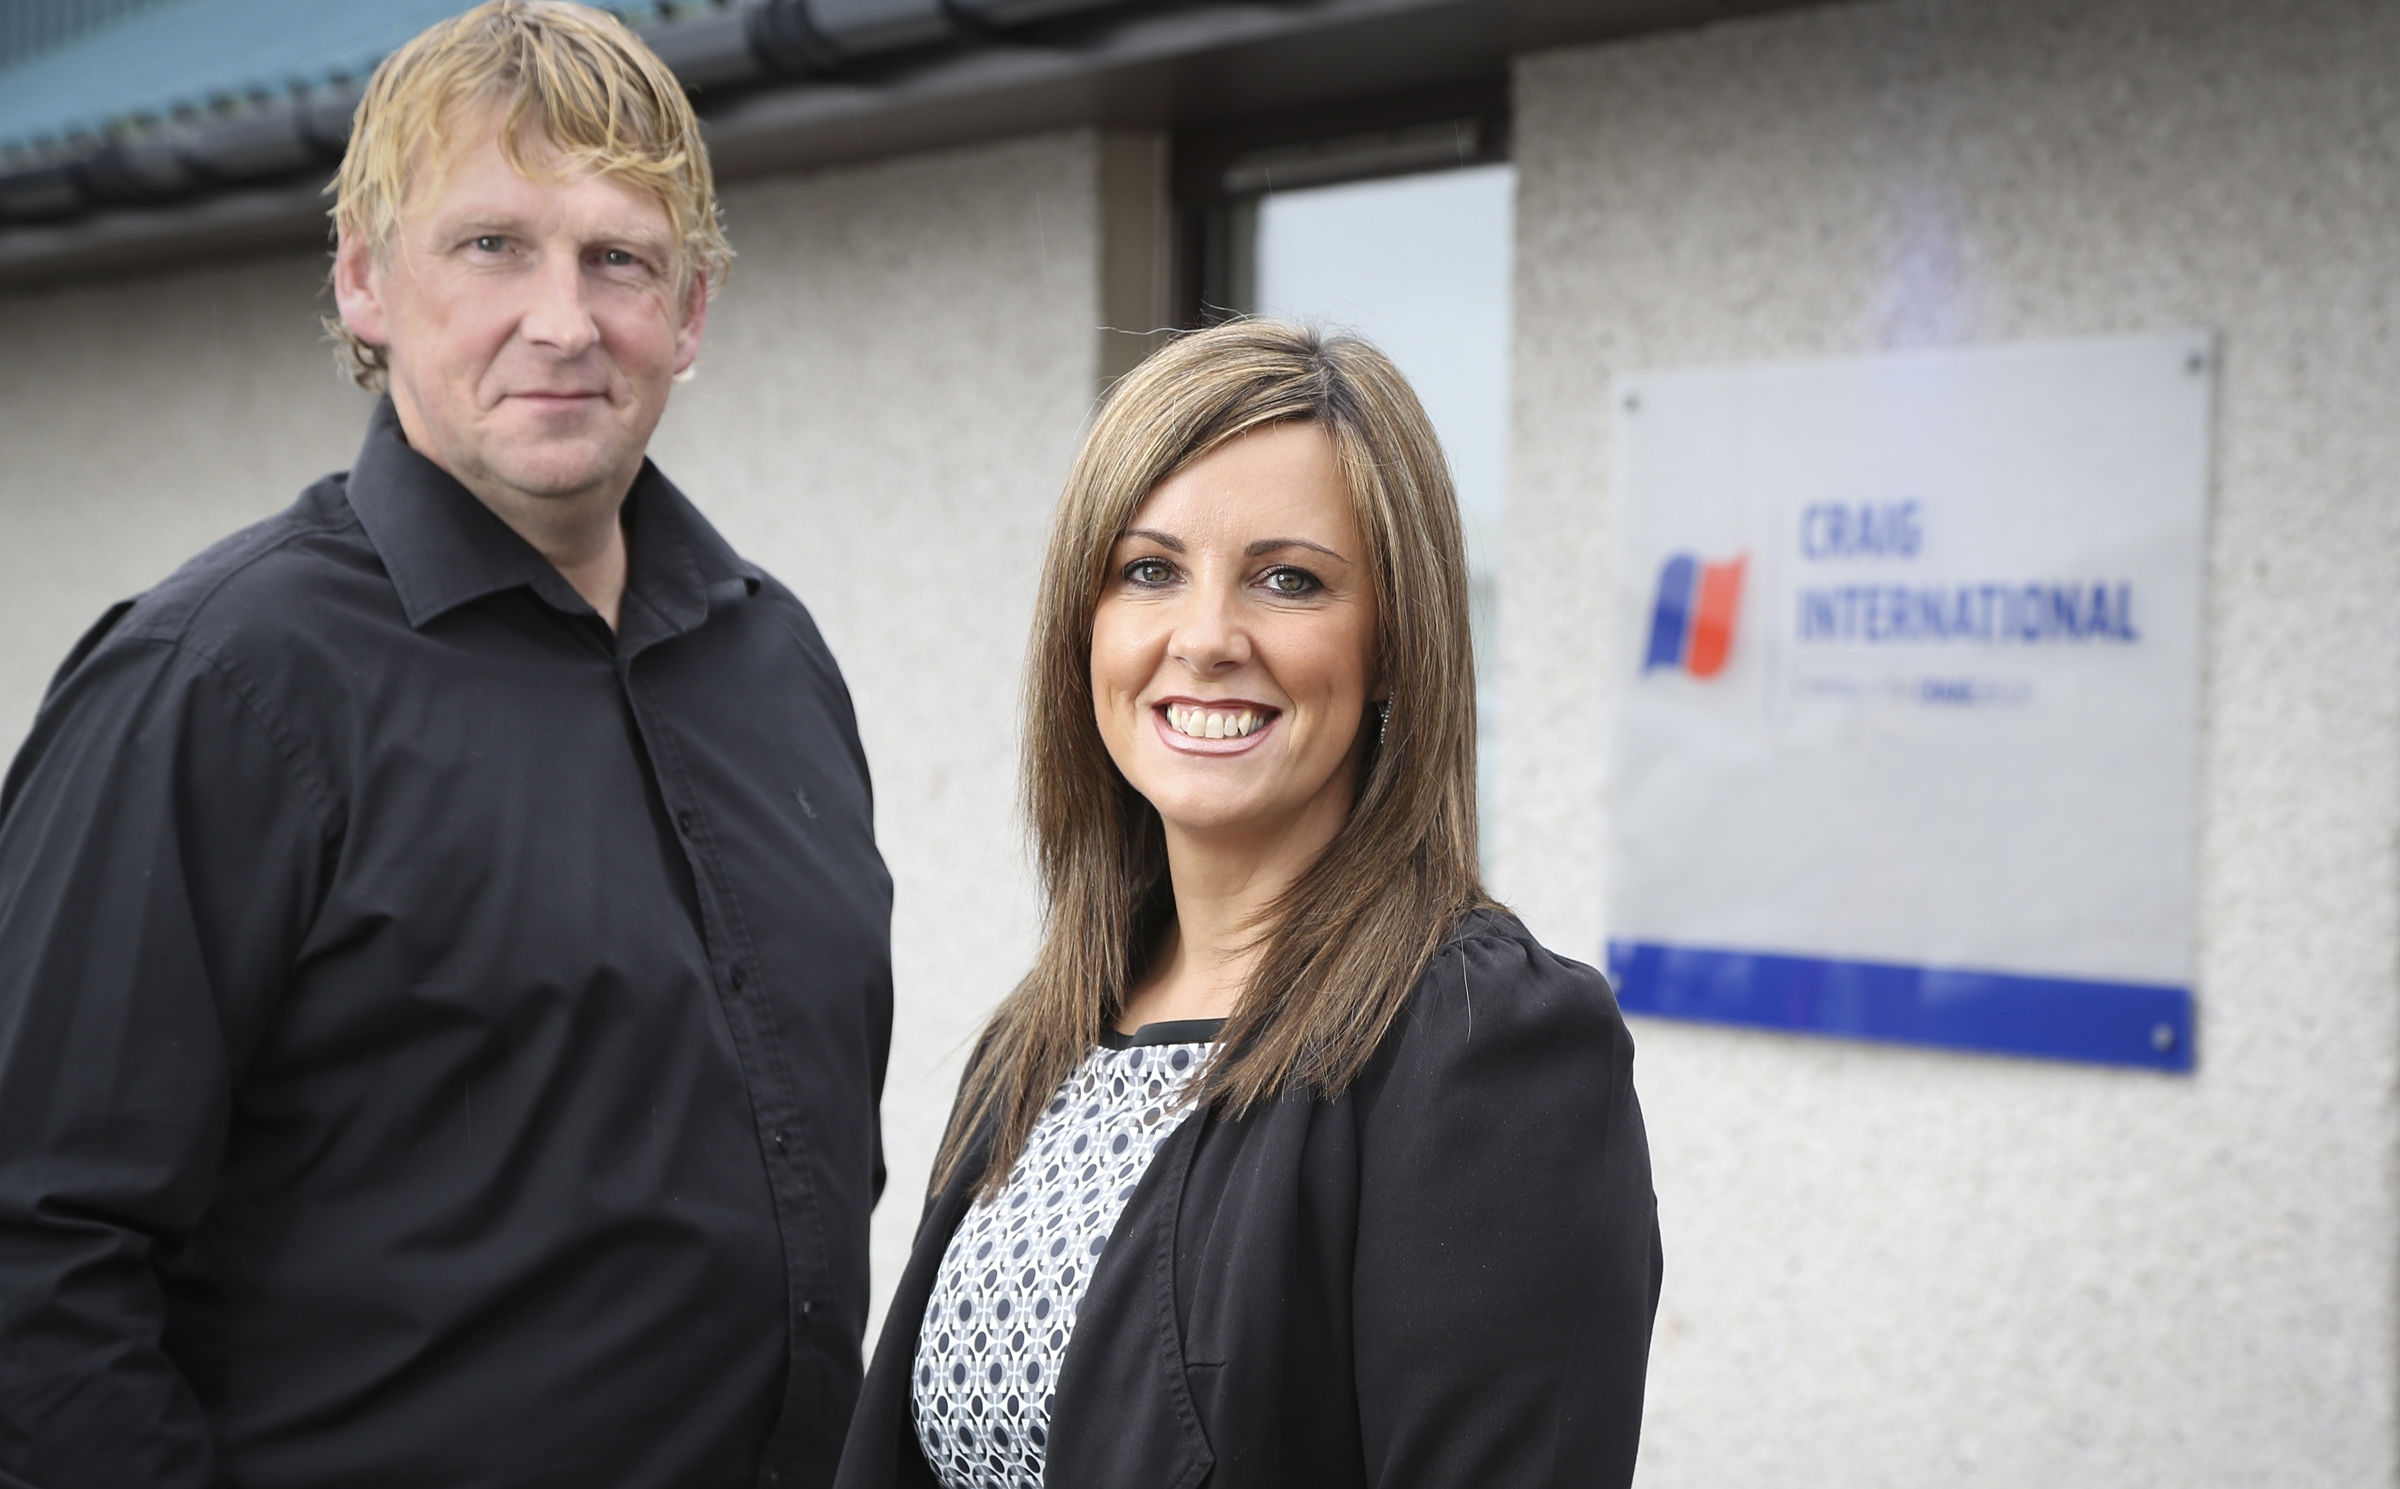 Steve McHardy and Jill MacDonald, joint managing directors of Craig International, which has launched the pioneering Craig Collaboration platform.